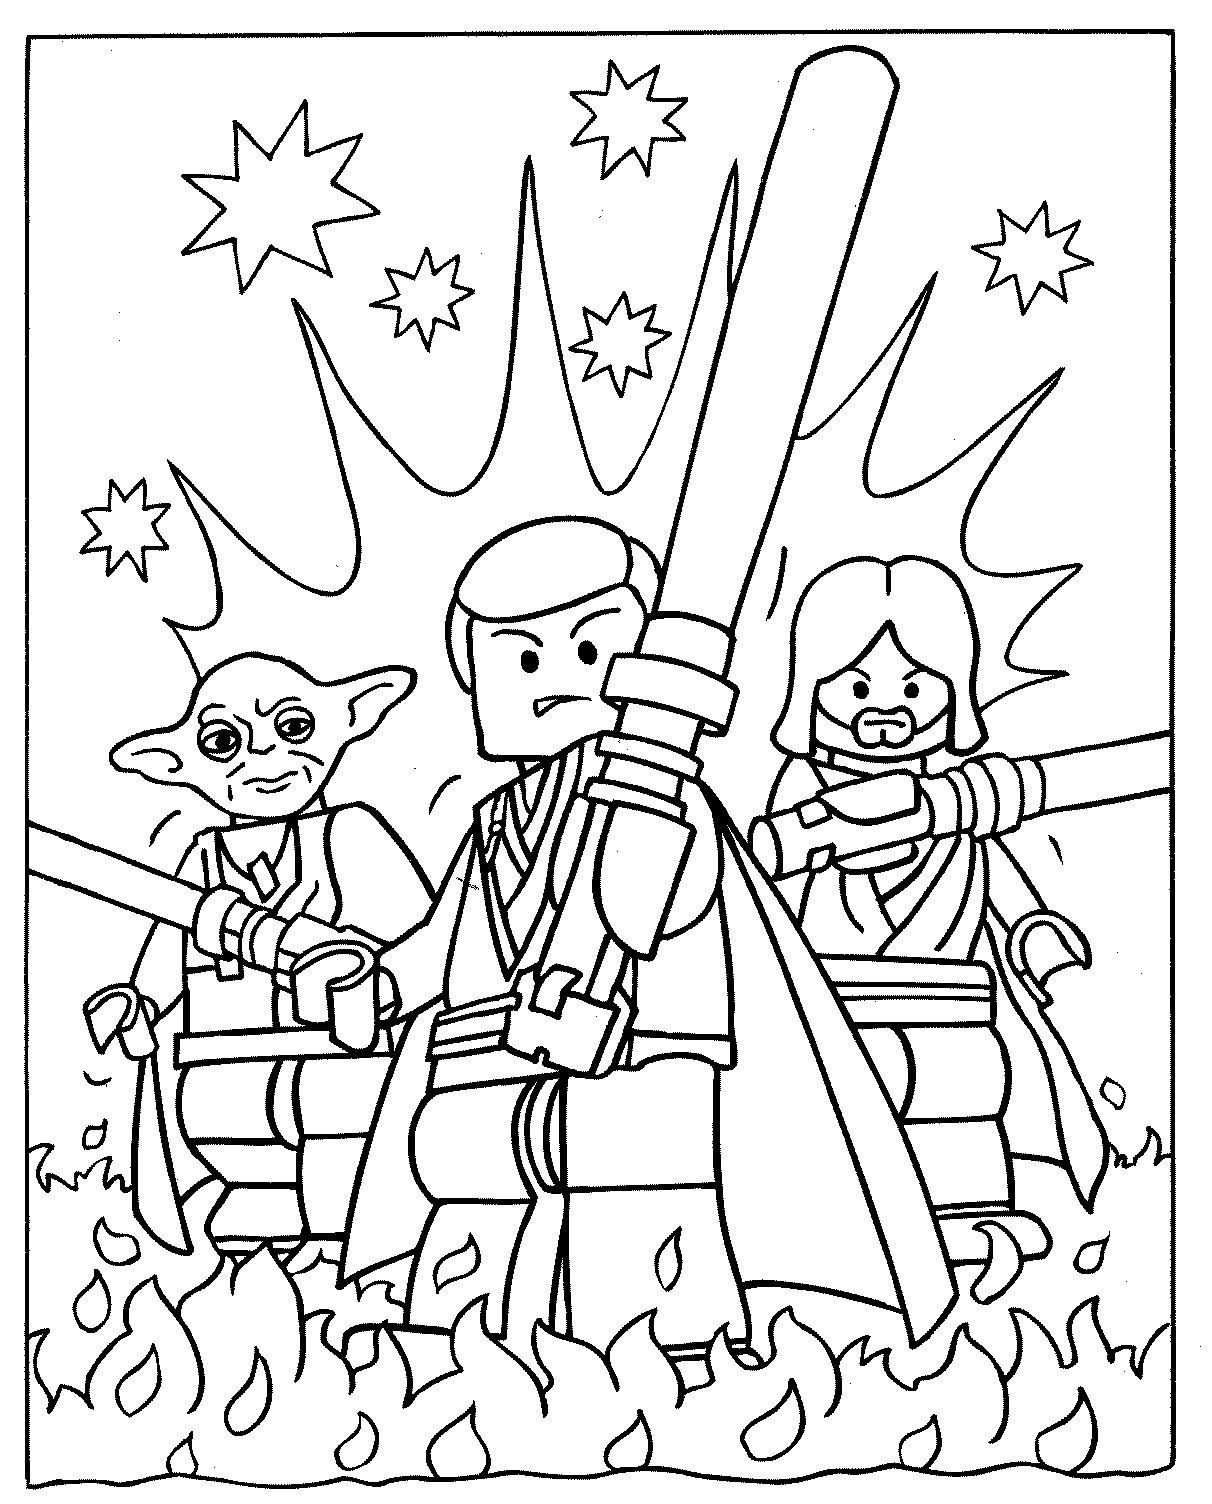 Coloring Ideas : Extraordinary Free Star Wars Coloring Pages Image - Free Printable Star Wars Coloring Pages